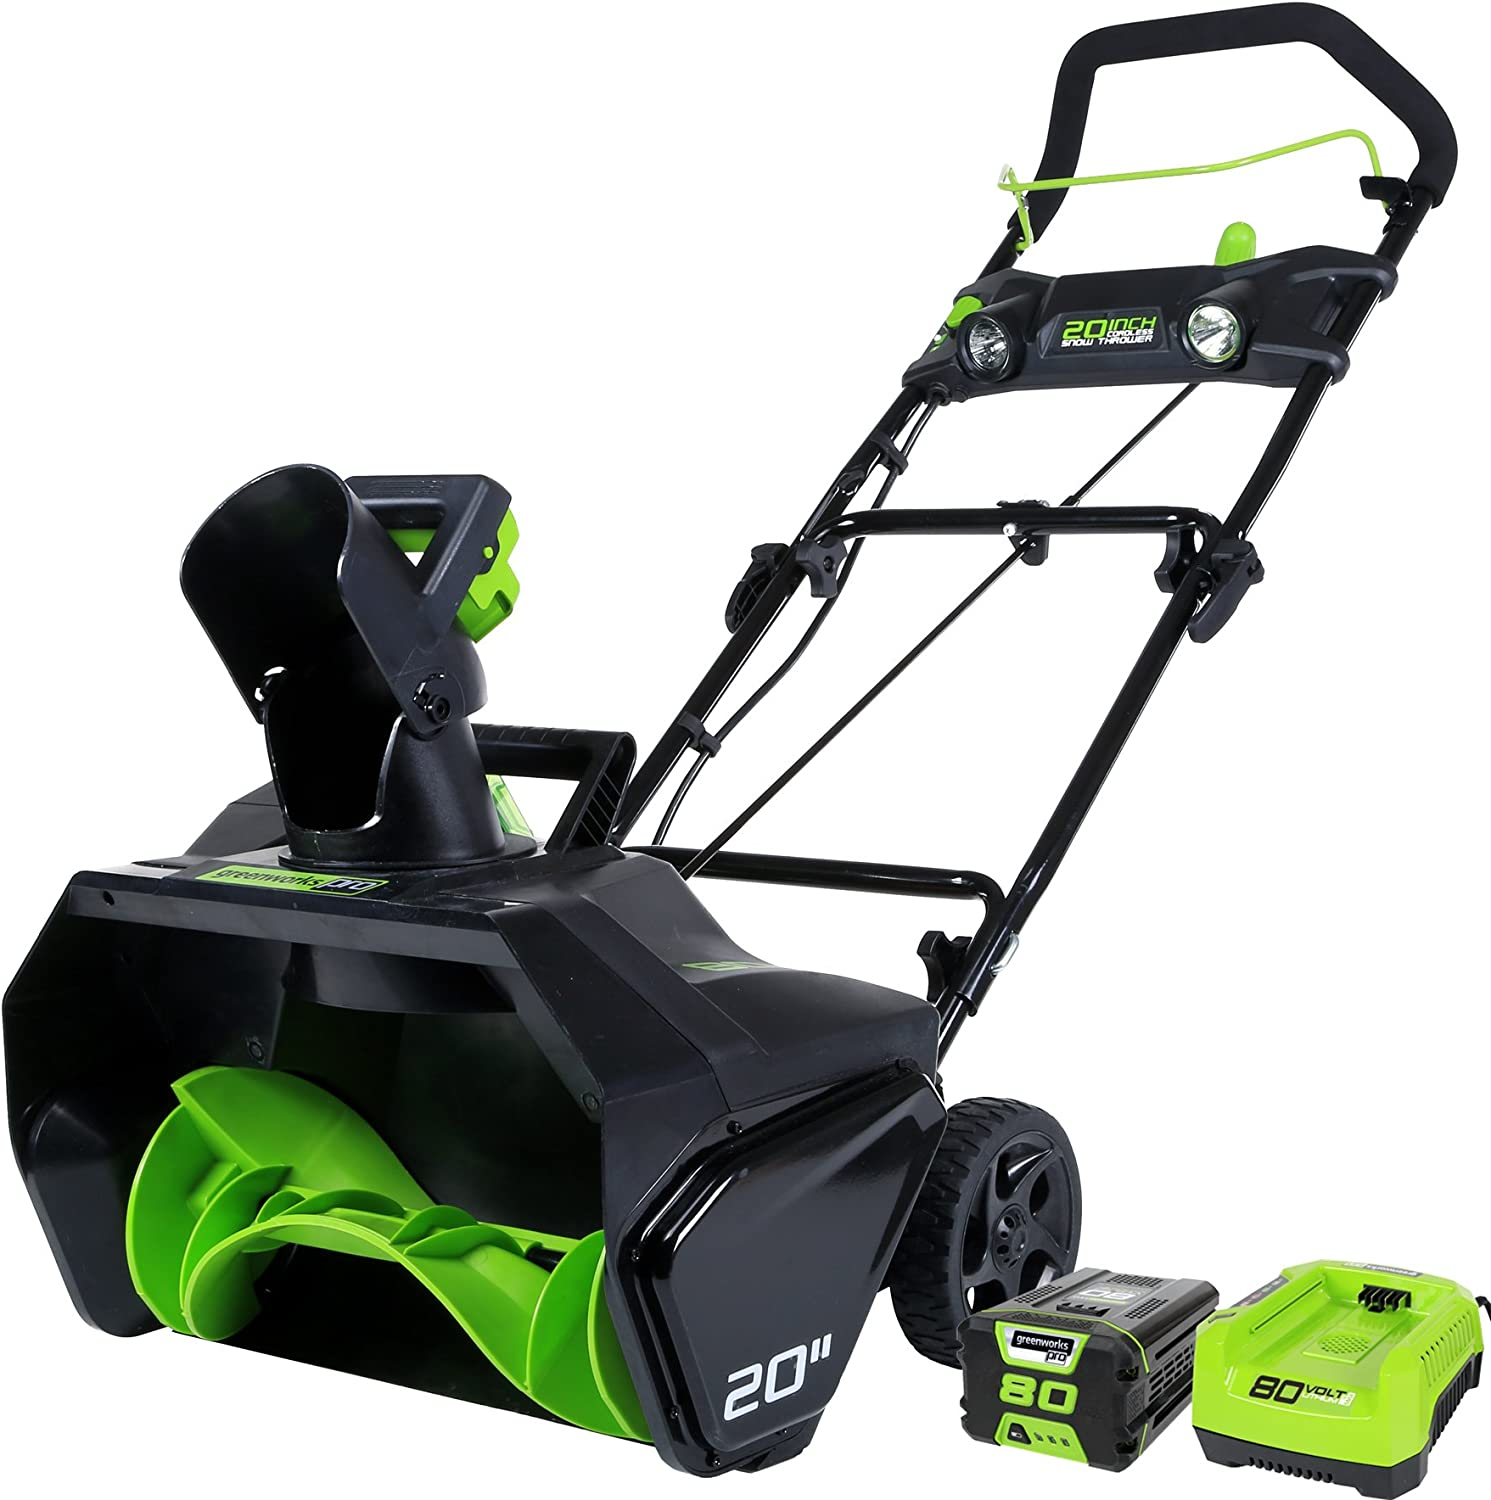 B00Y9PZEP8 GreenWorks 2600402 Pro 80V 20-Inch Cordless Snow Thrower, 2Ah Battery & Charger Included 71SaSiJn7RL